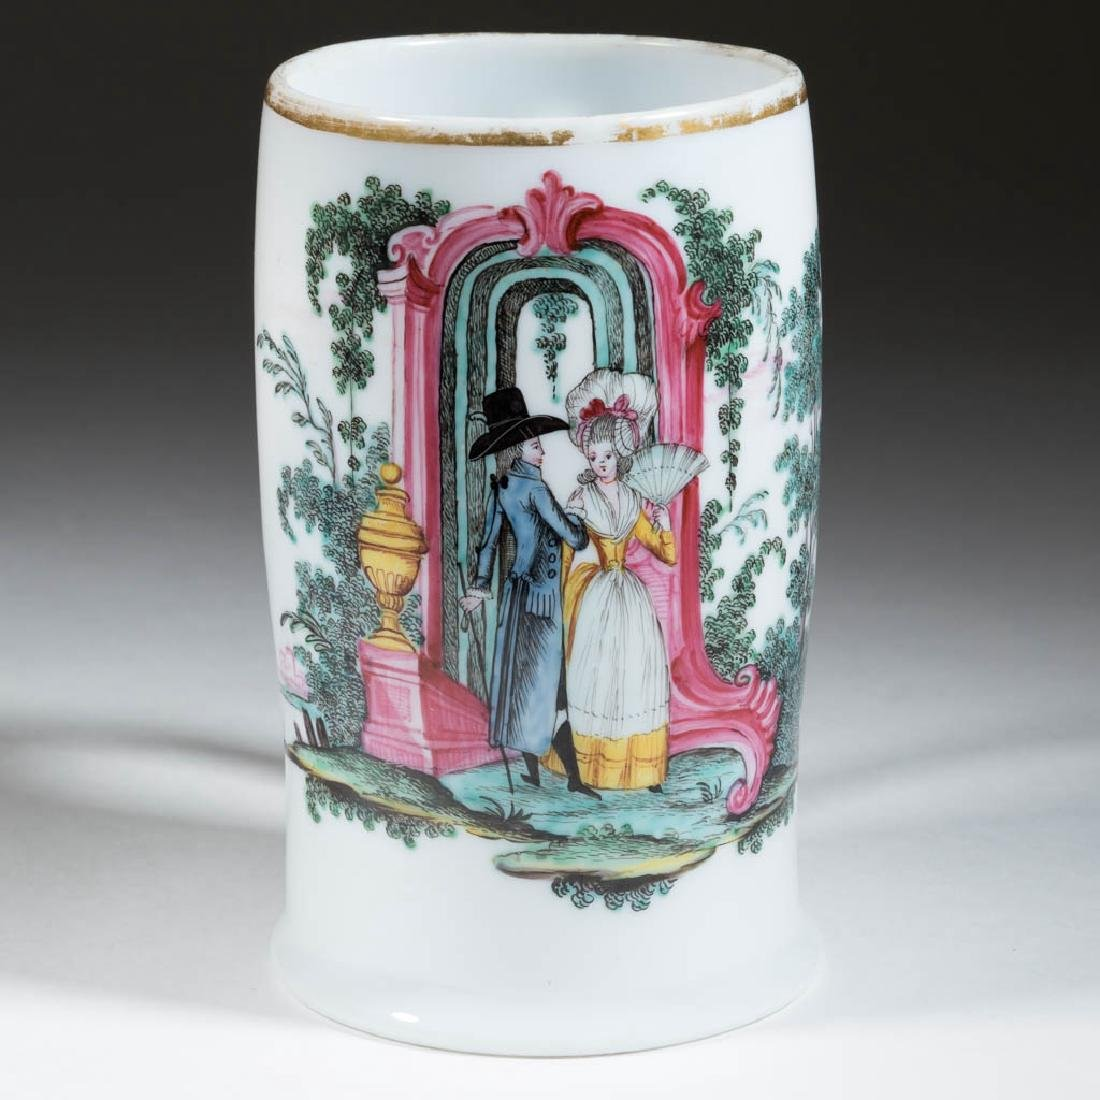 FREE-BLOWN AND DECORATED TANKARD